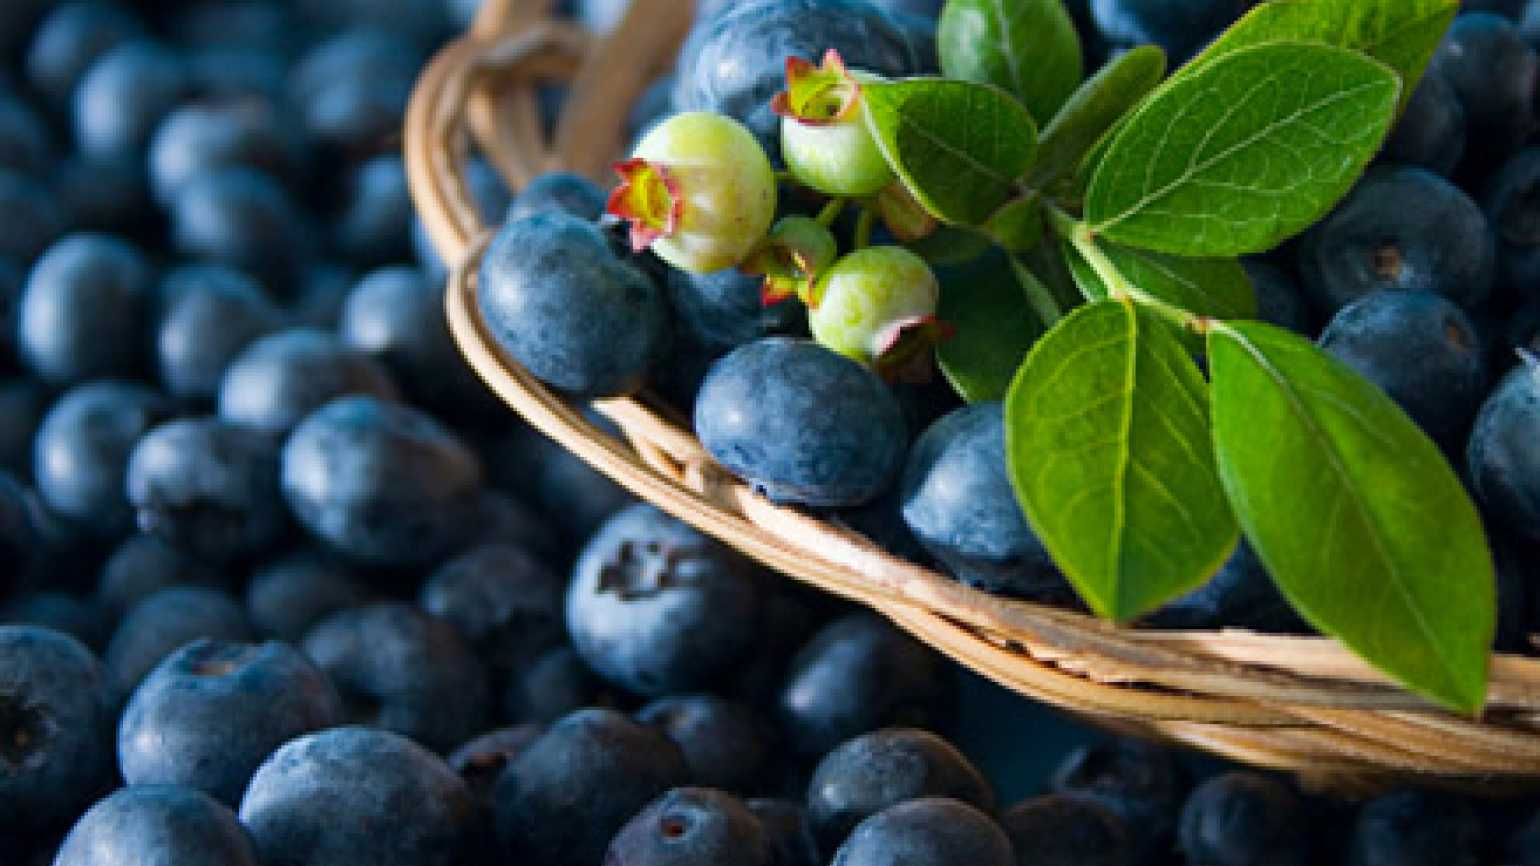 Fresh blueberries spilling out of a basket